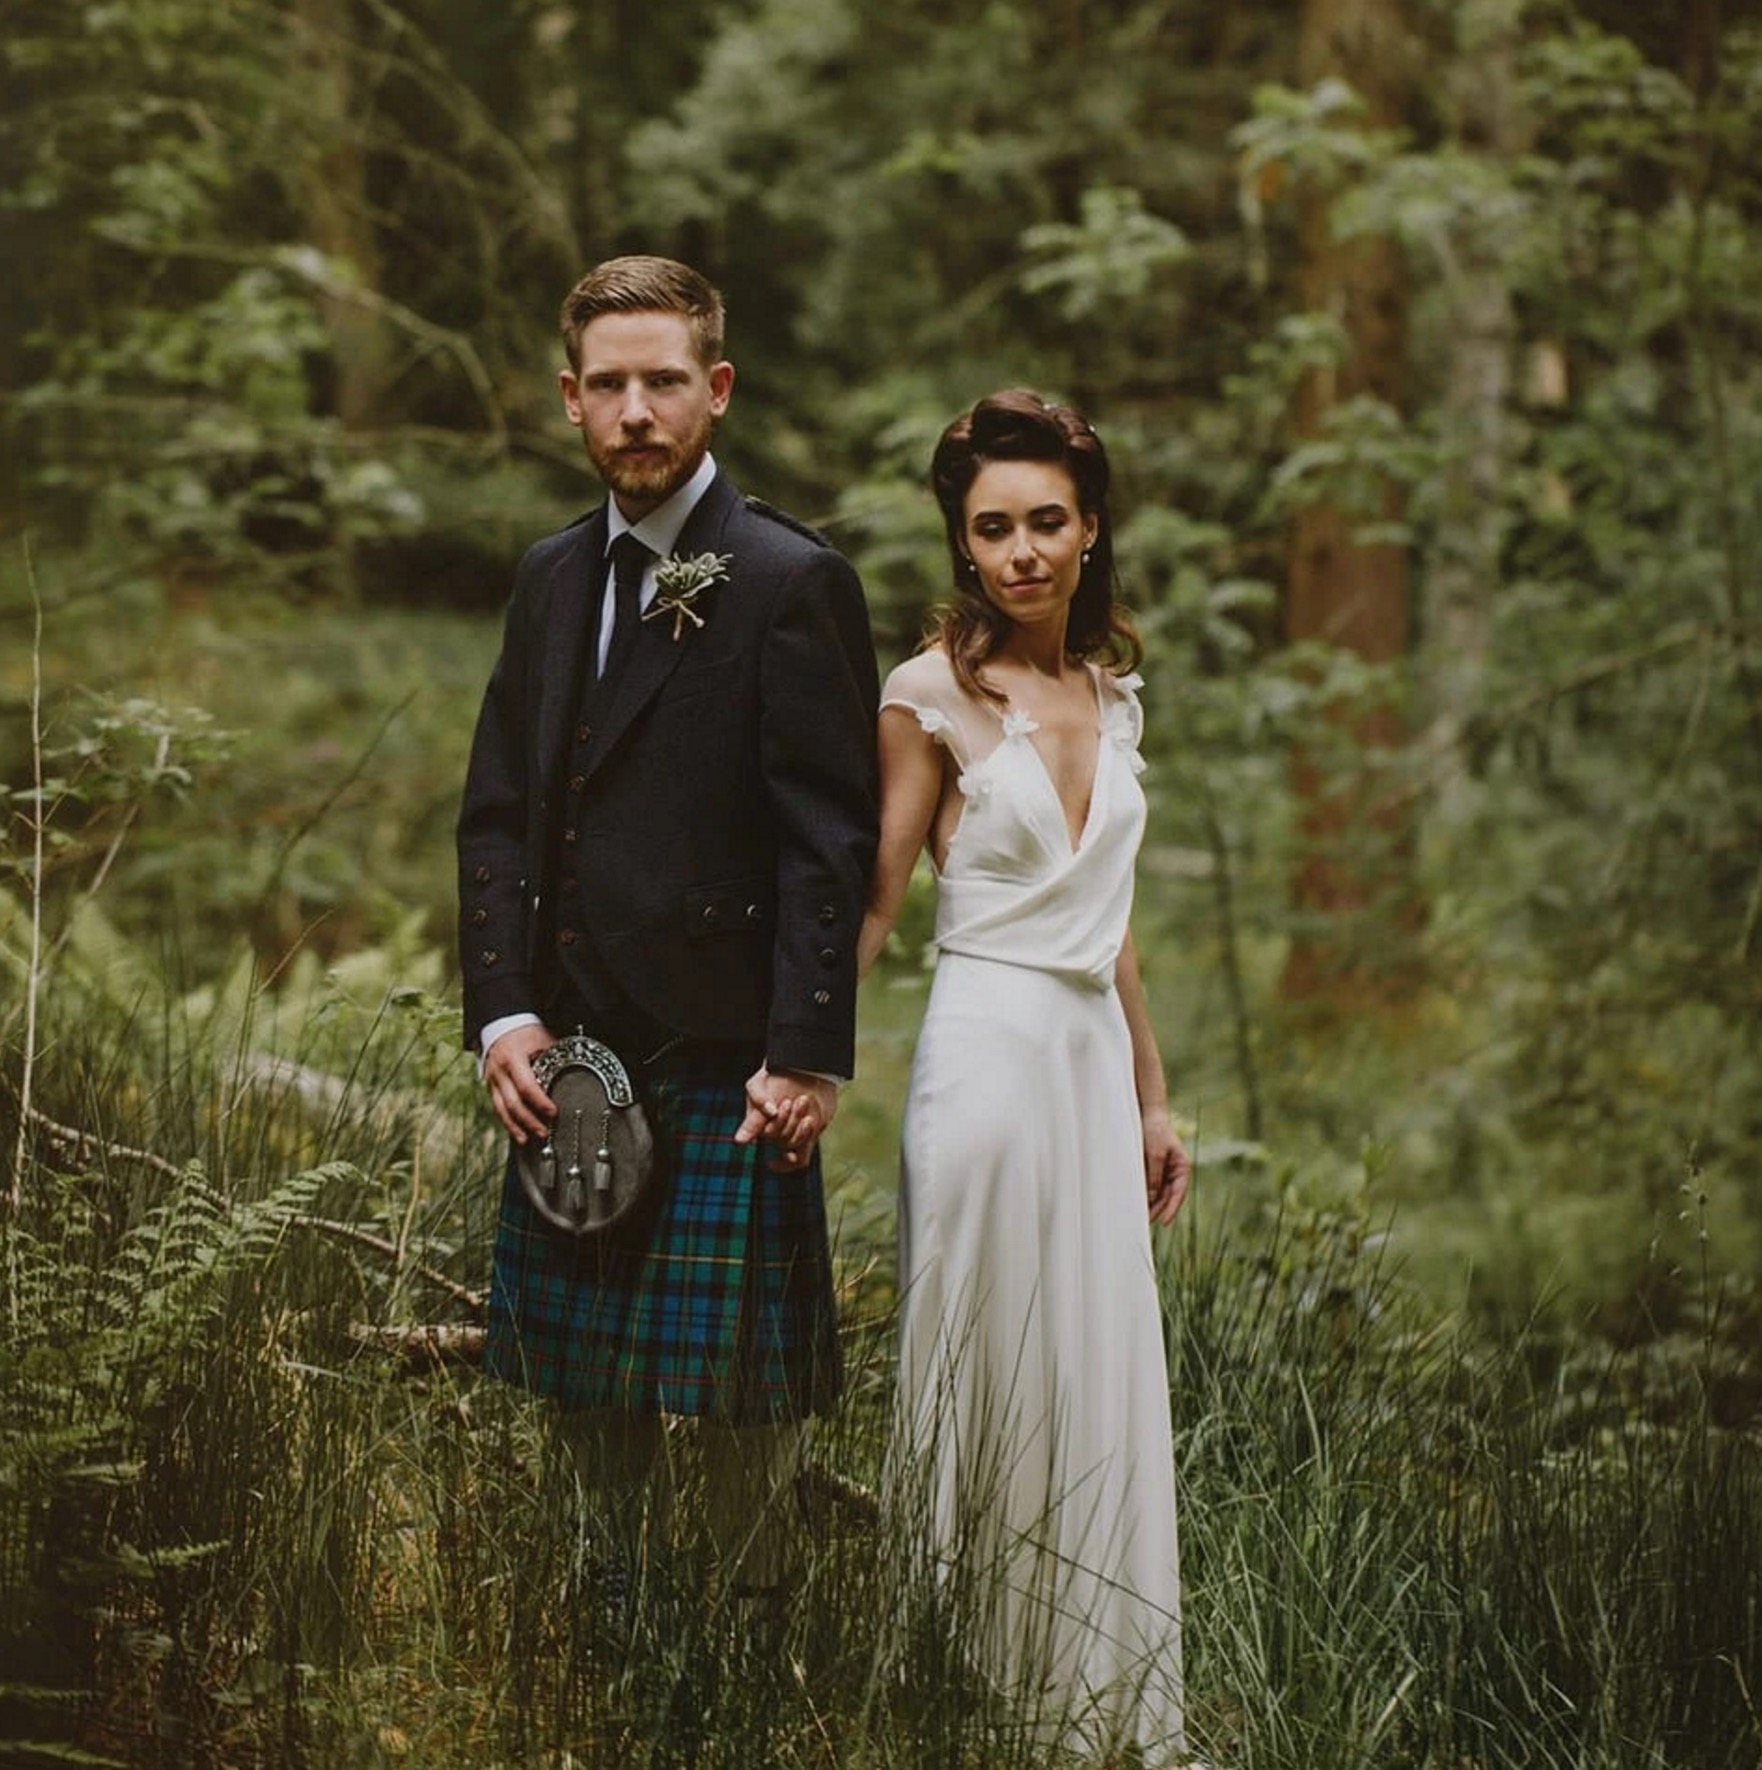 A David Fielden Gown For A Relaxed and Nature Inspired Scottish Highlands Wedding